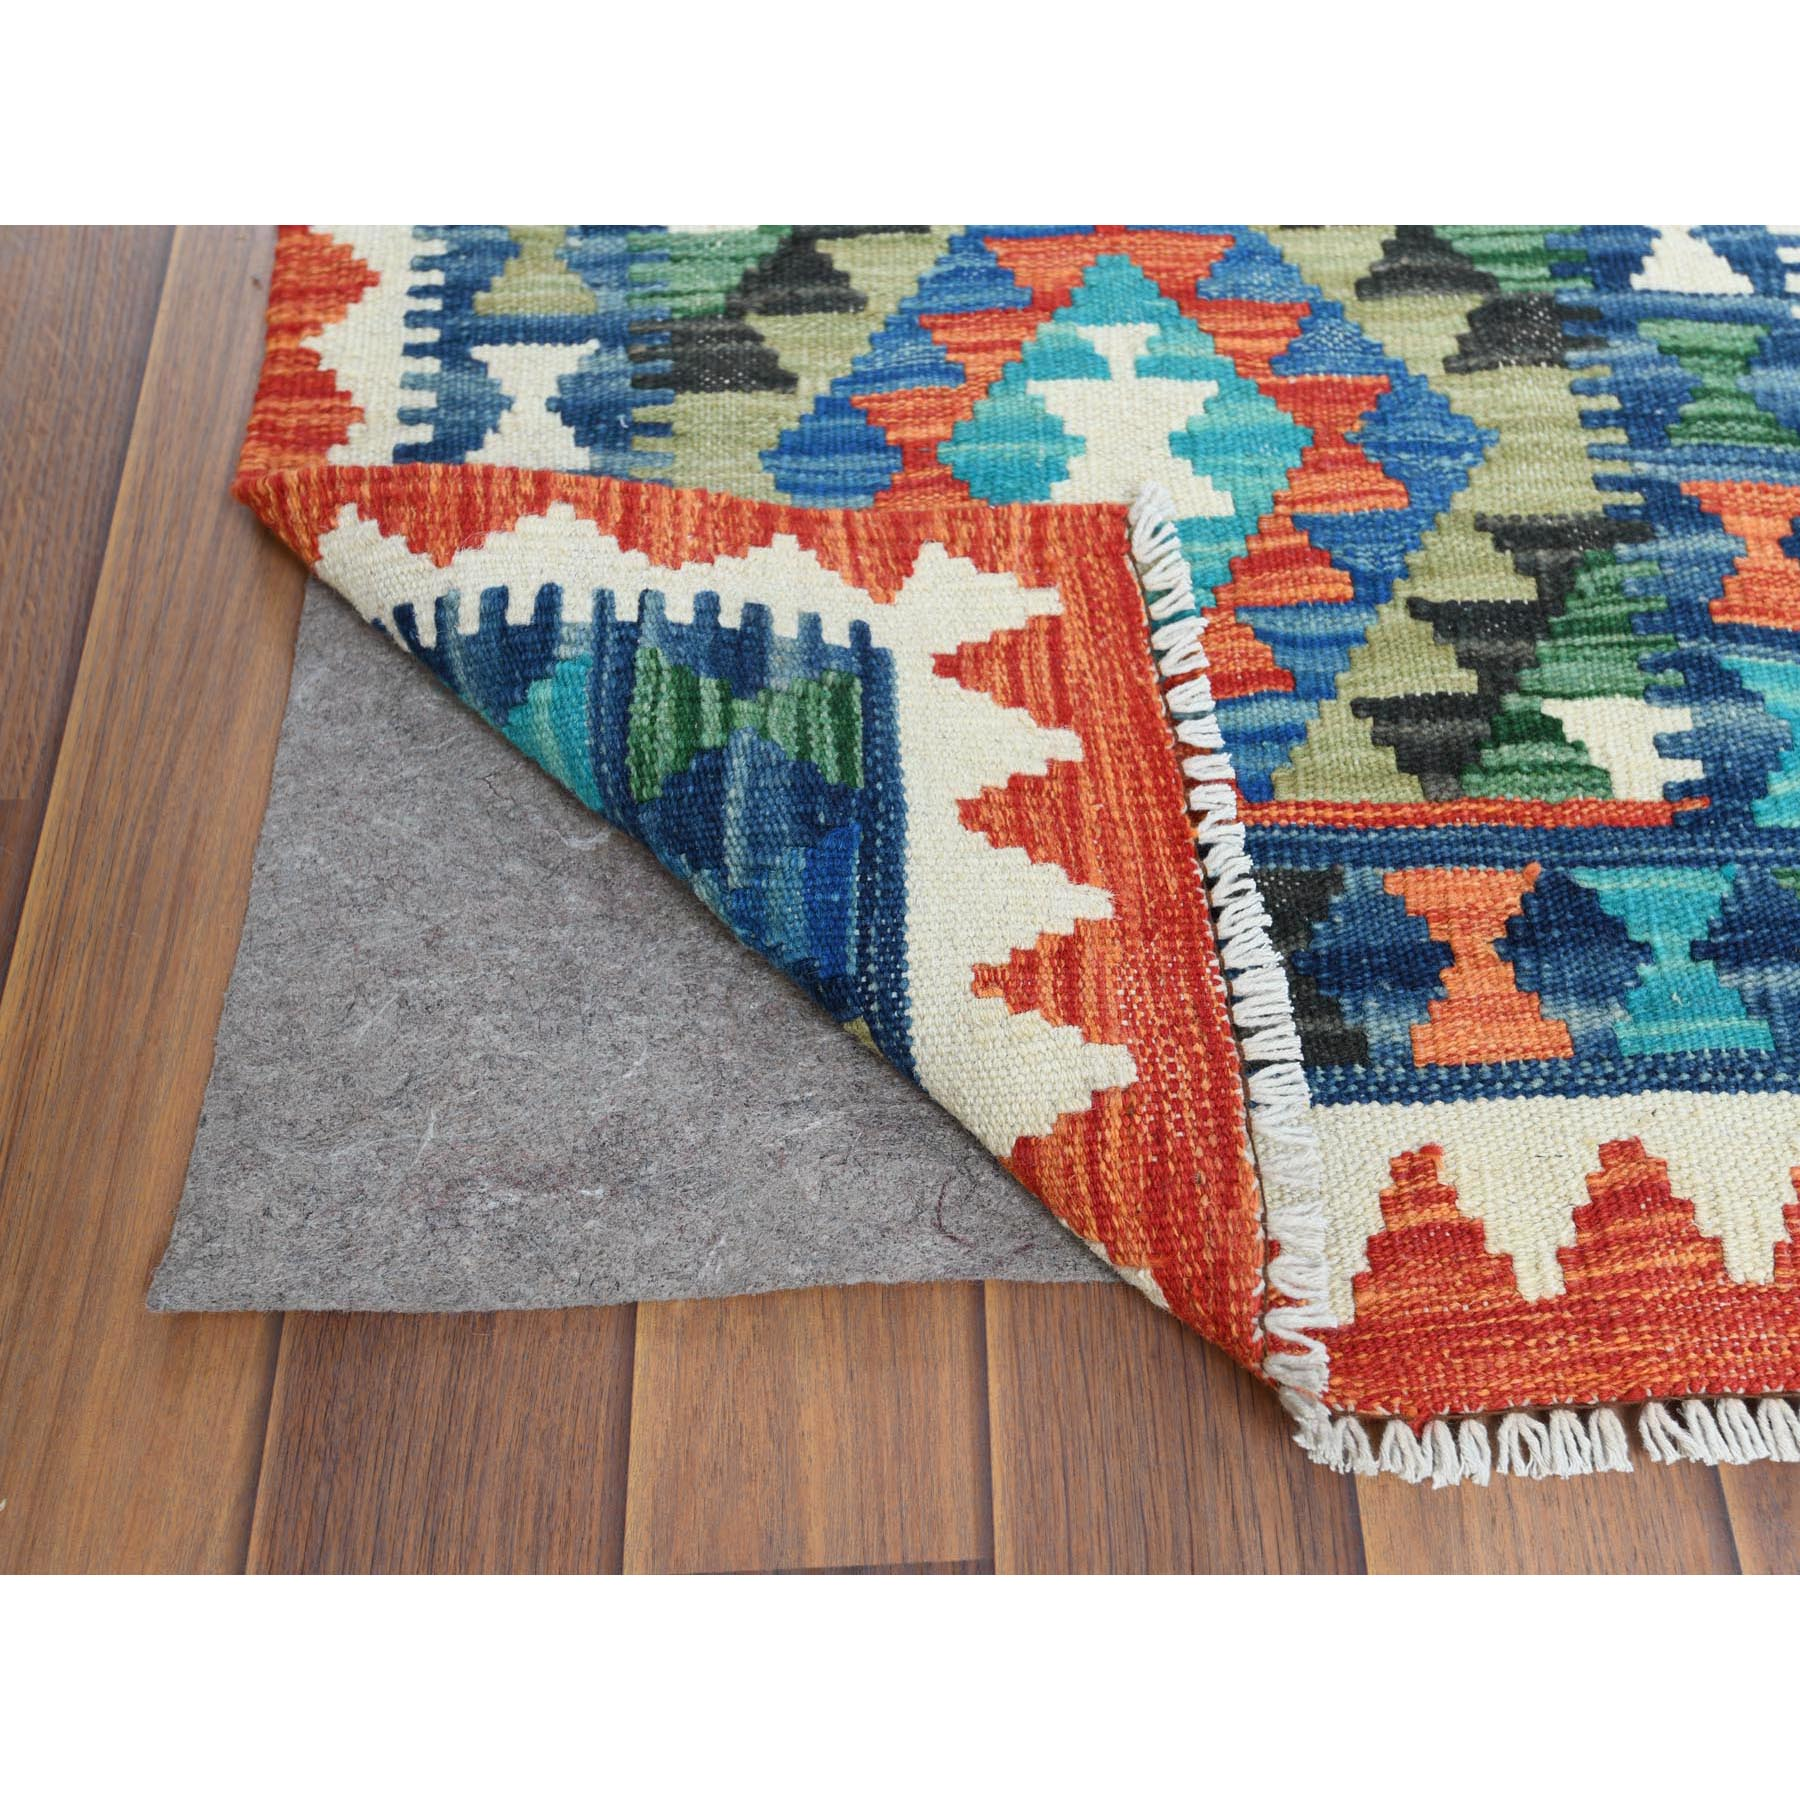 2'x3' Colorful Afghan Kilim Tribal Design Shiny Wool Reversible Flat Weave Hand Woven Oriental Rug